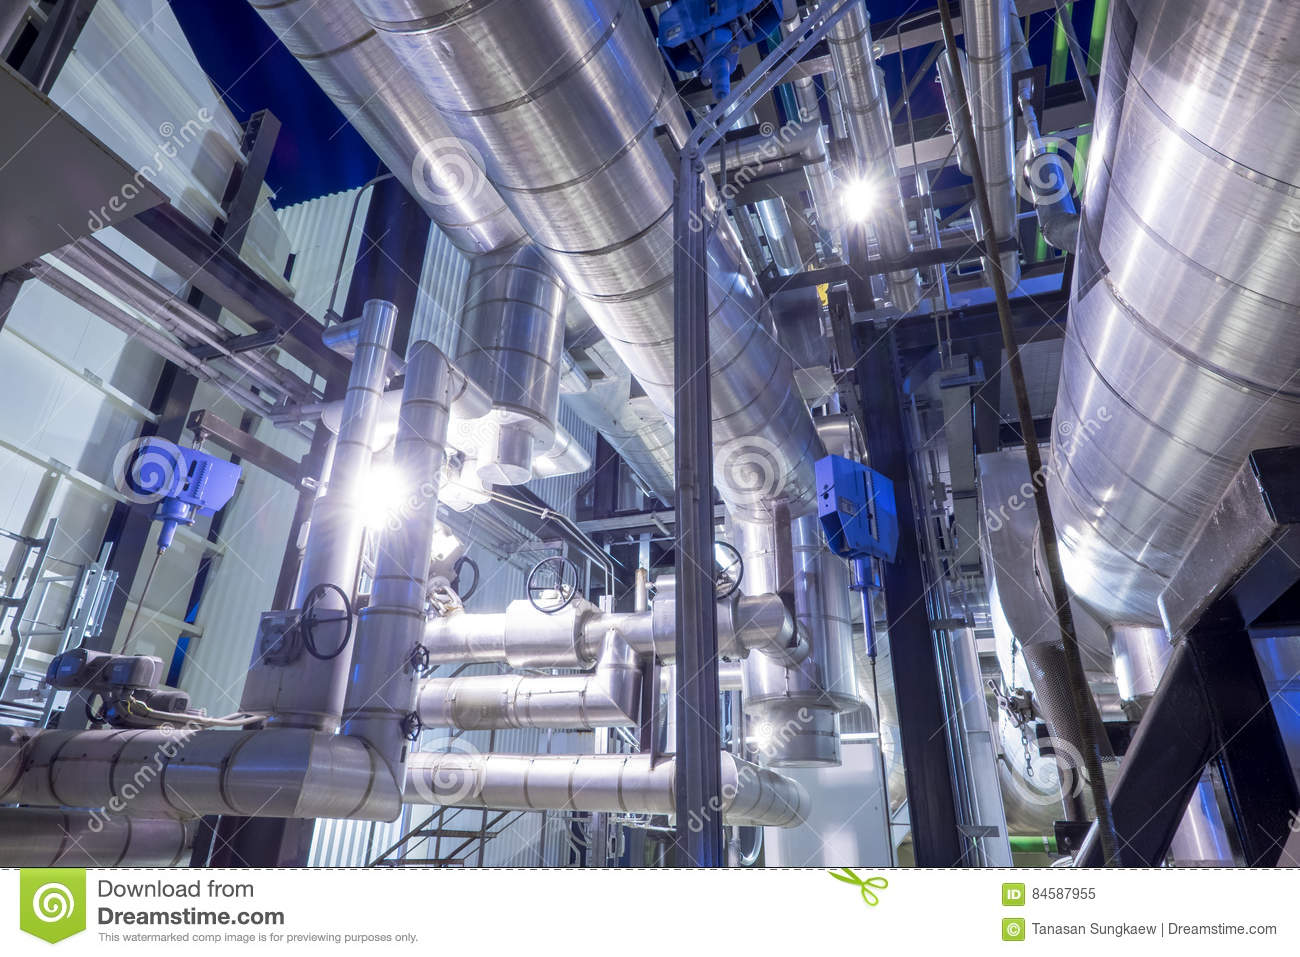 Piping With Insulation Of Boiler Stock Image - Image of device ...